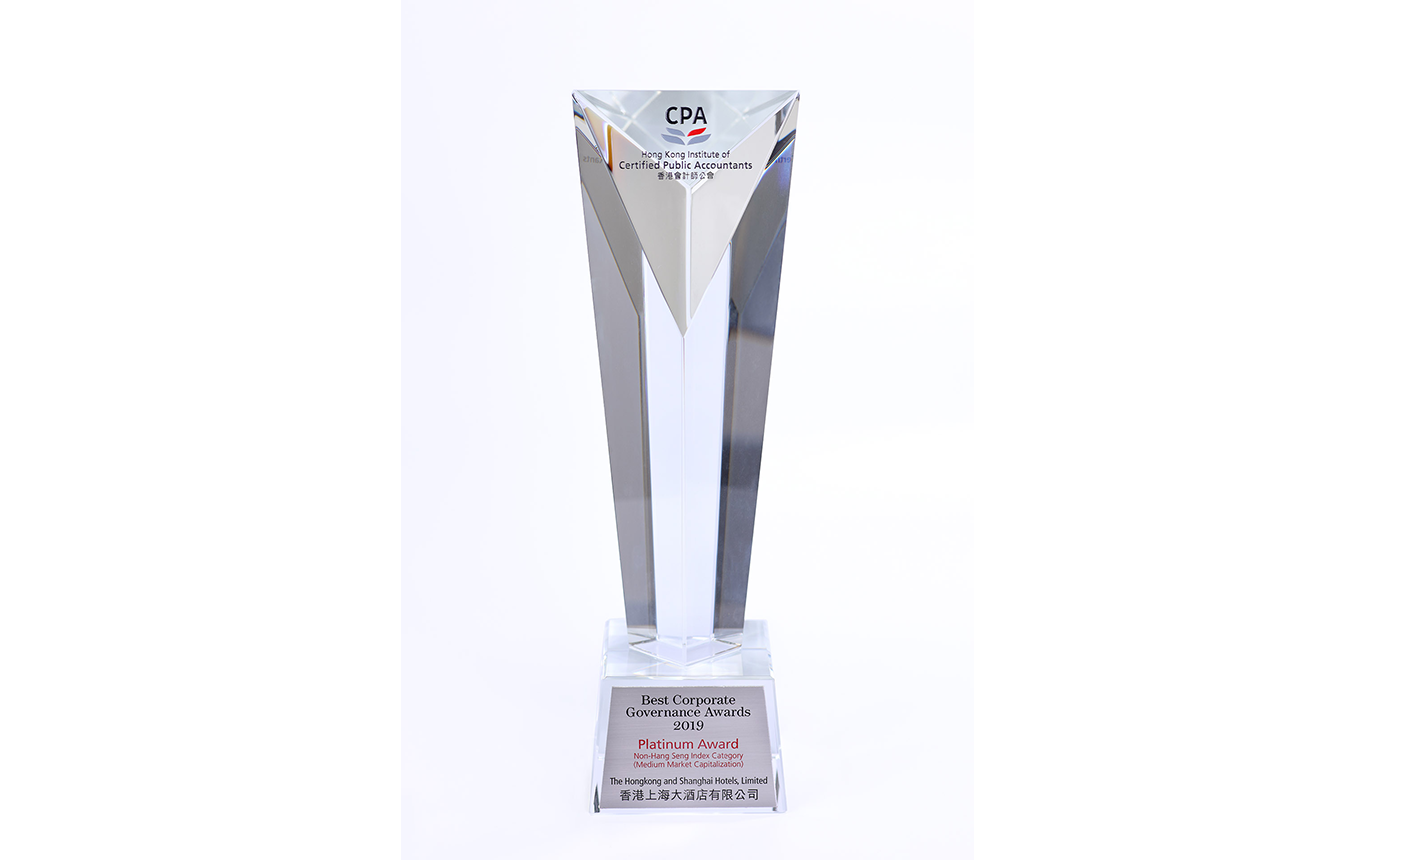 2019 HKICPA Best Corporate Governance Awards - Platinum